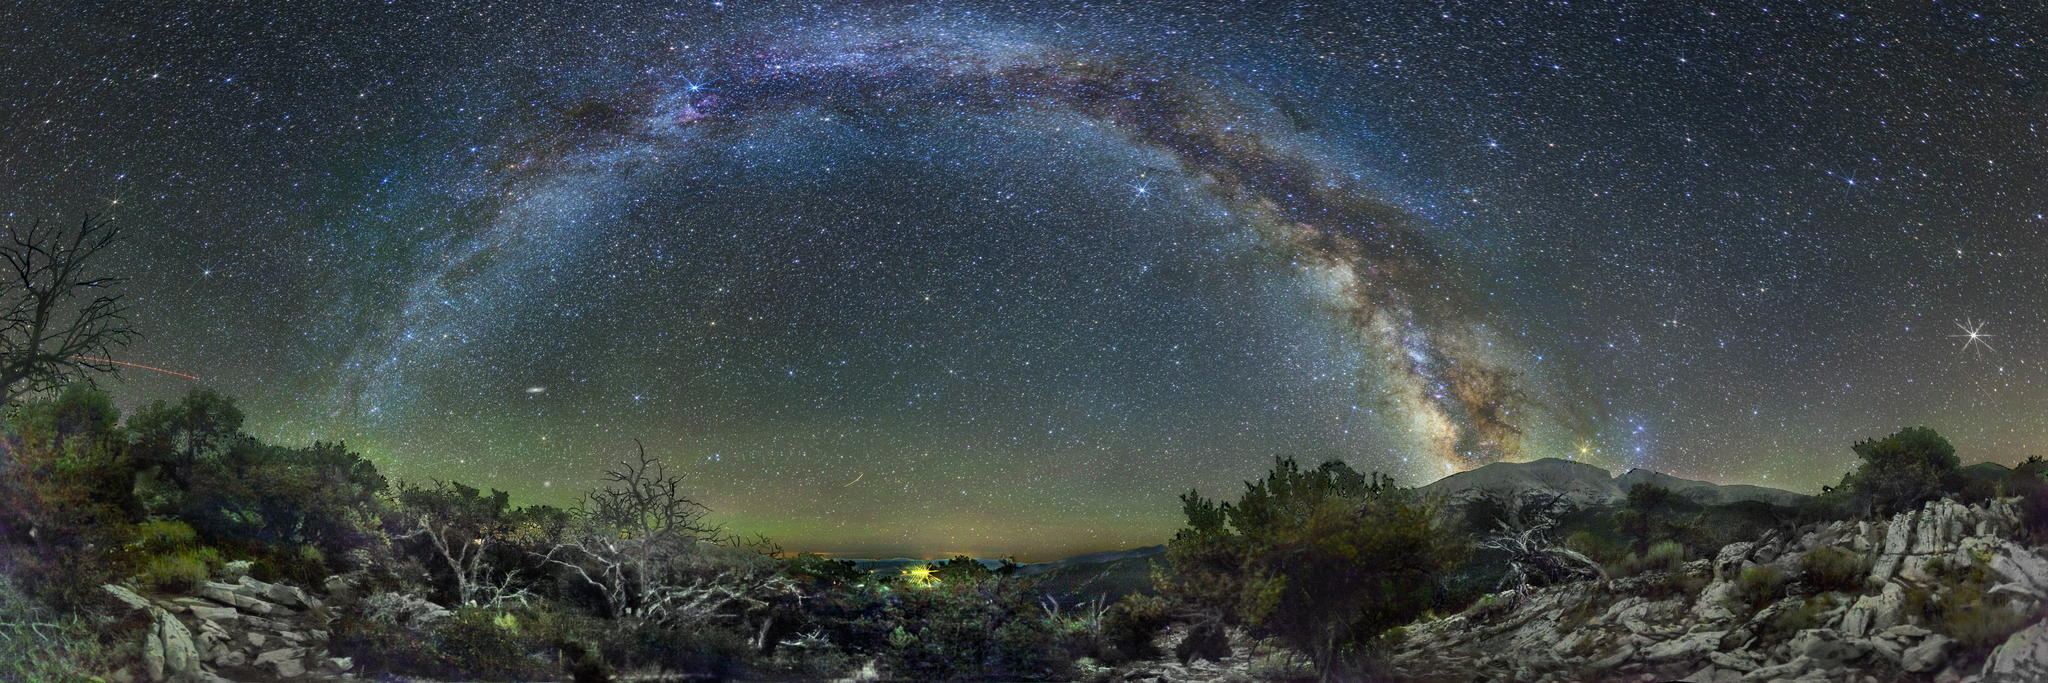 Milky way from Yellowstone Park-18